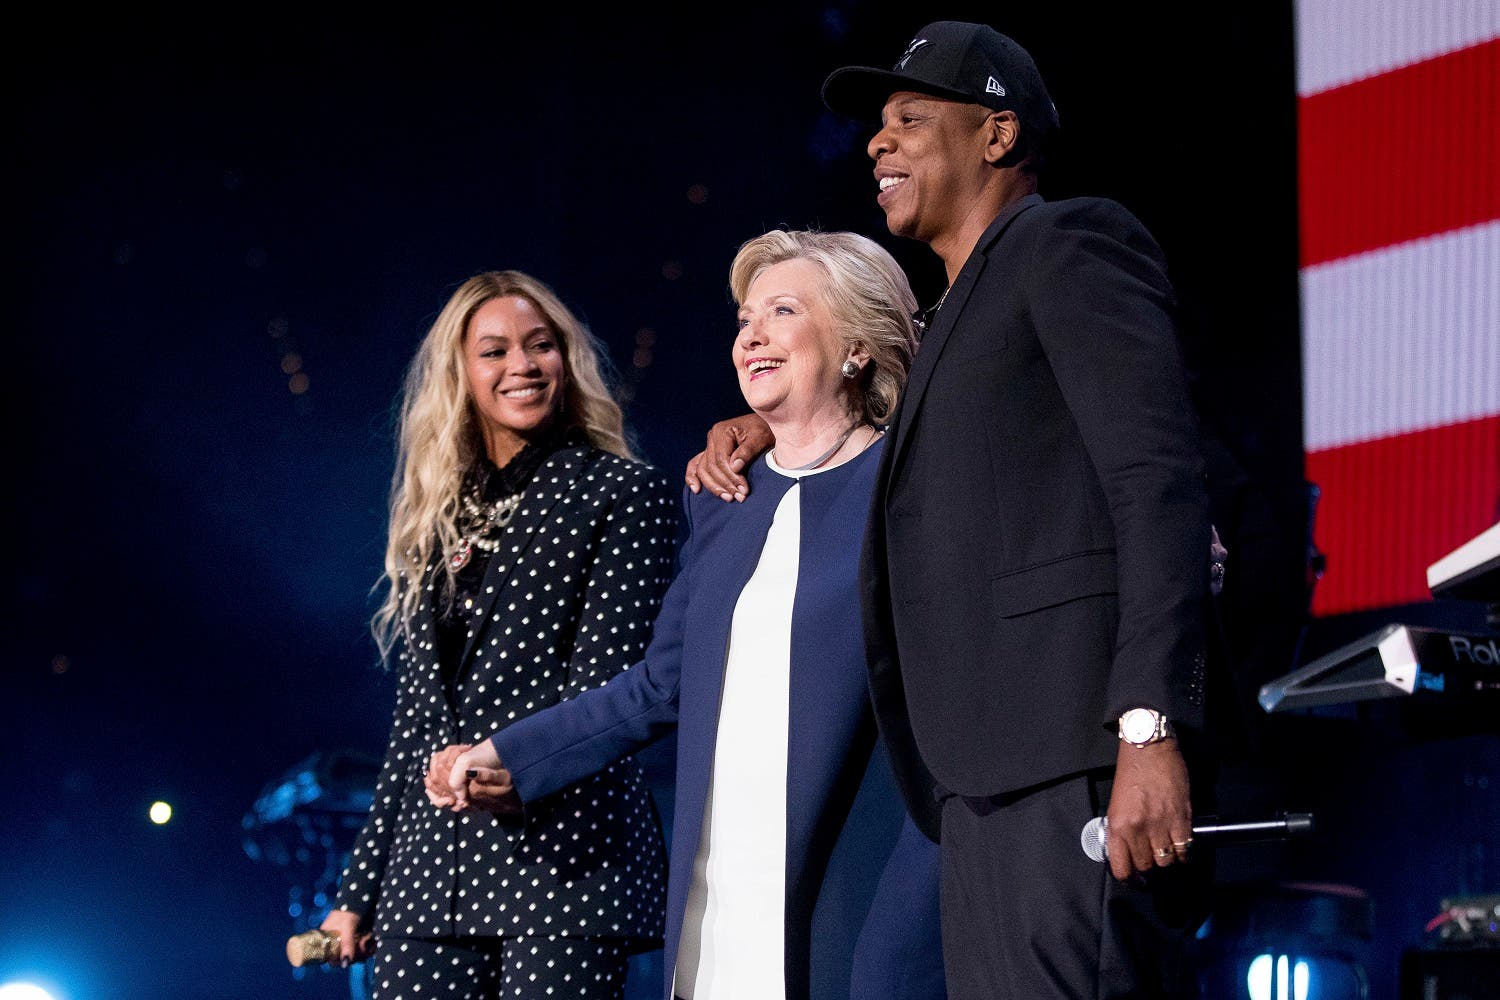 AP Democratic presidential candidate Hillary Clinton, center, appears on stage with artists Jay Z, right, and Beyonce, left, during a free concert at at the Wolstein Center in Cleveland, Friday, Nov. 4, 2016.